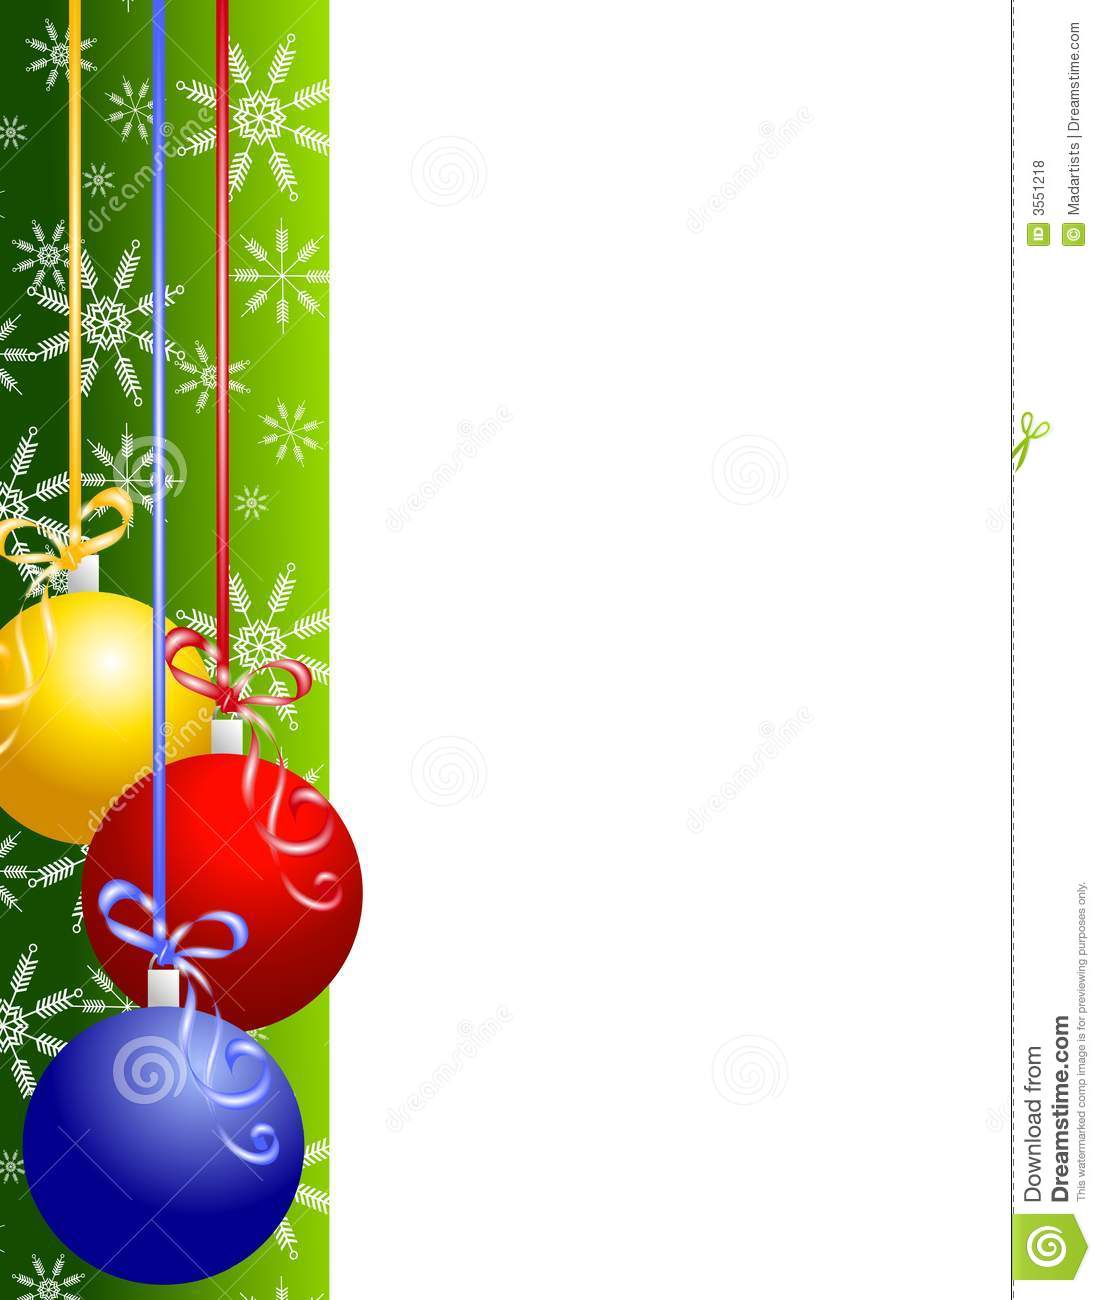 clipart xmas borders - photo #46